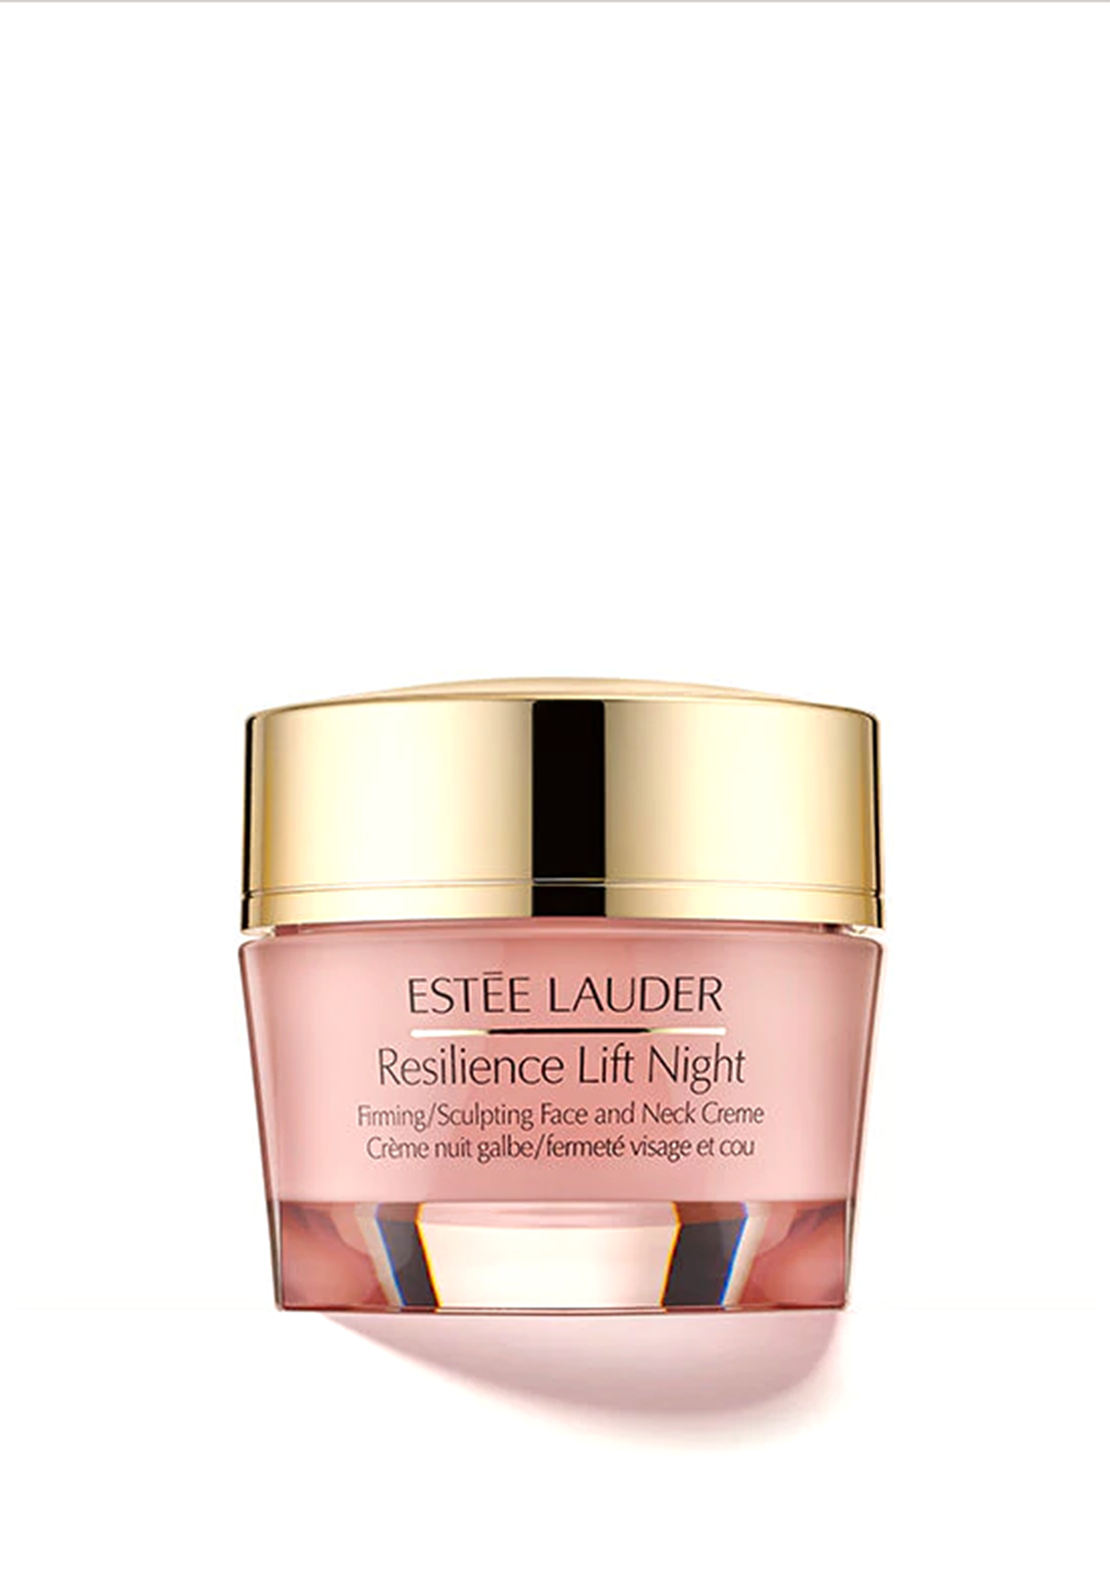 Estee Lauder Resilience Lift Face & Neck Cream for Normal Skin, 50ml